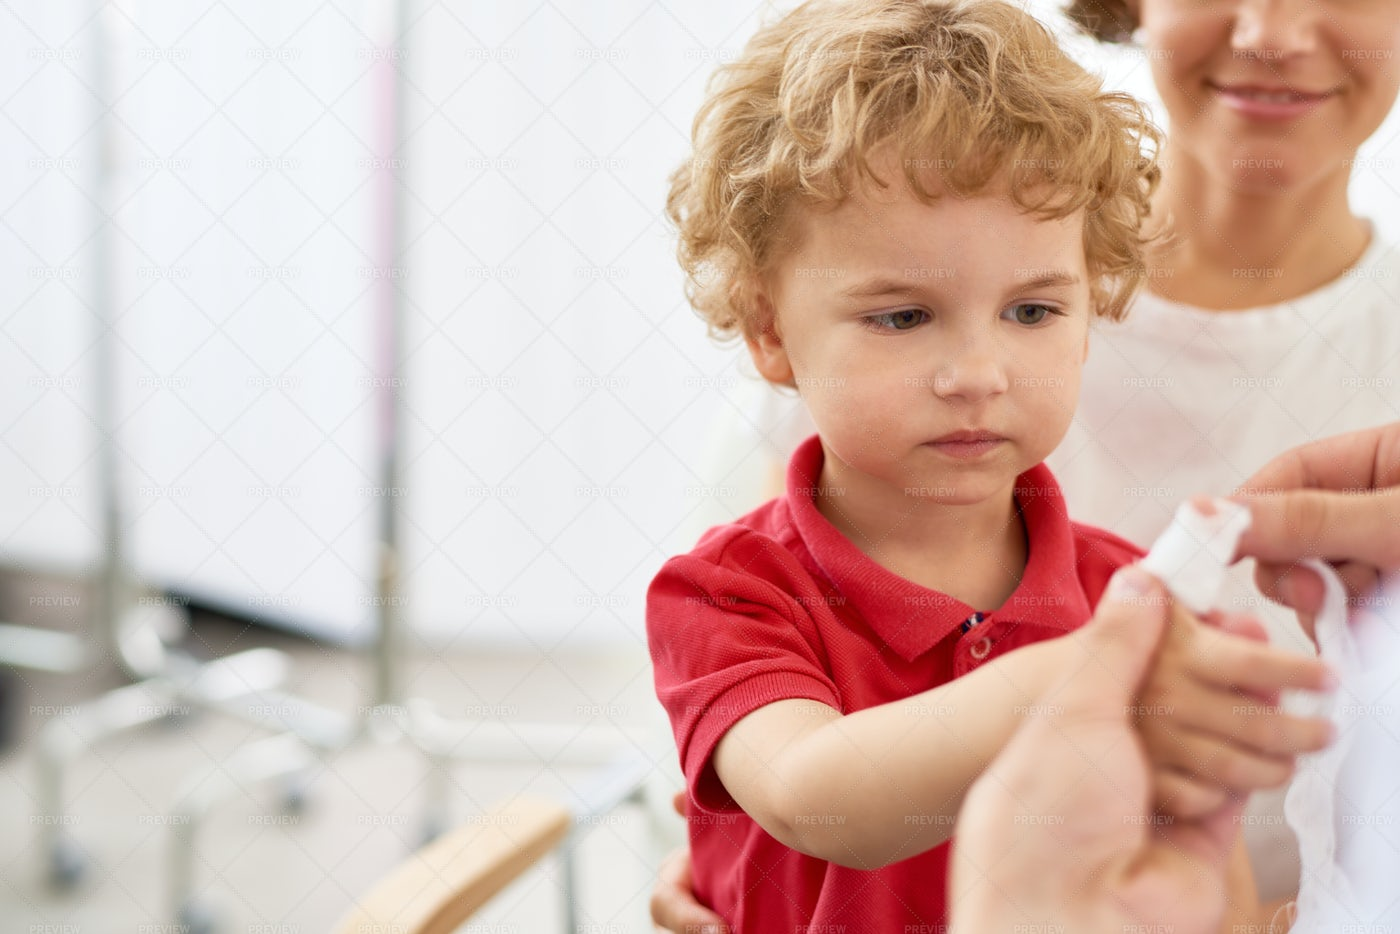 Little Boy With Injured Finger: Stock Photos